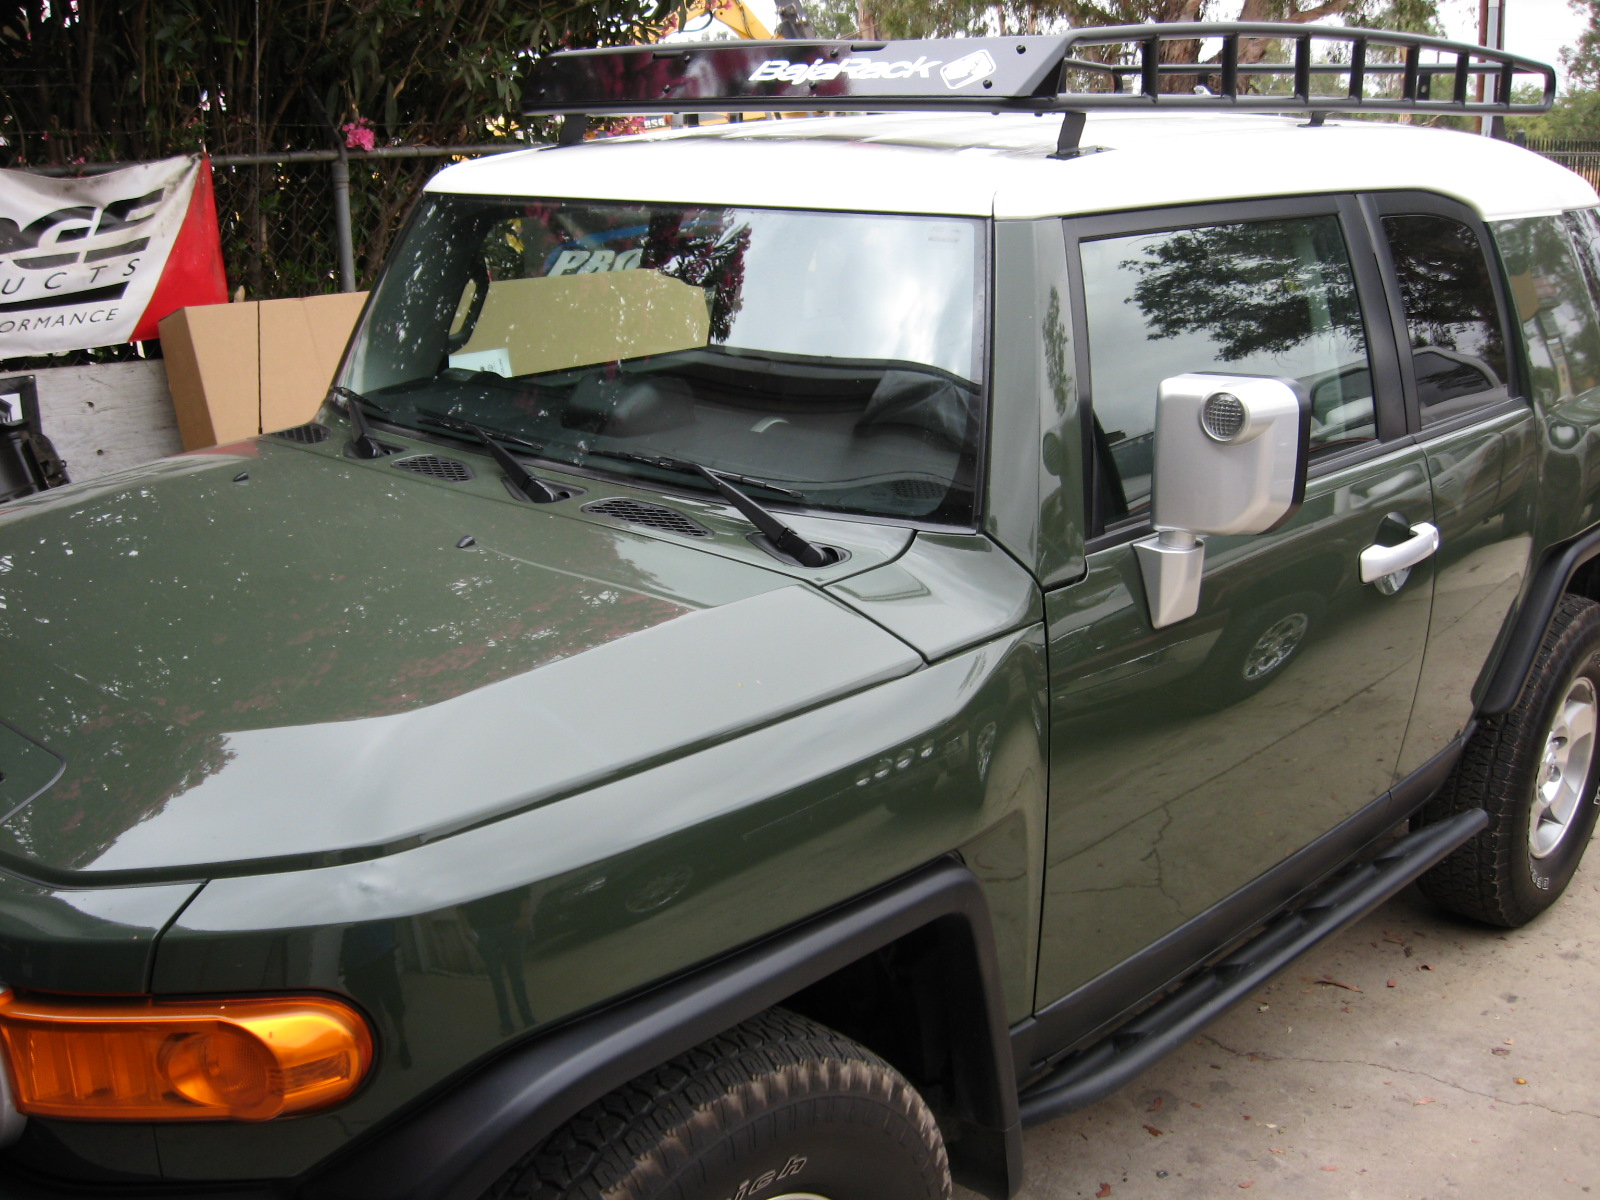 Fj Cruiser Roof Racks : Fj cruiser baja roof rack